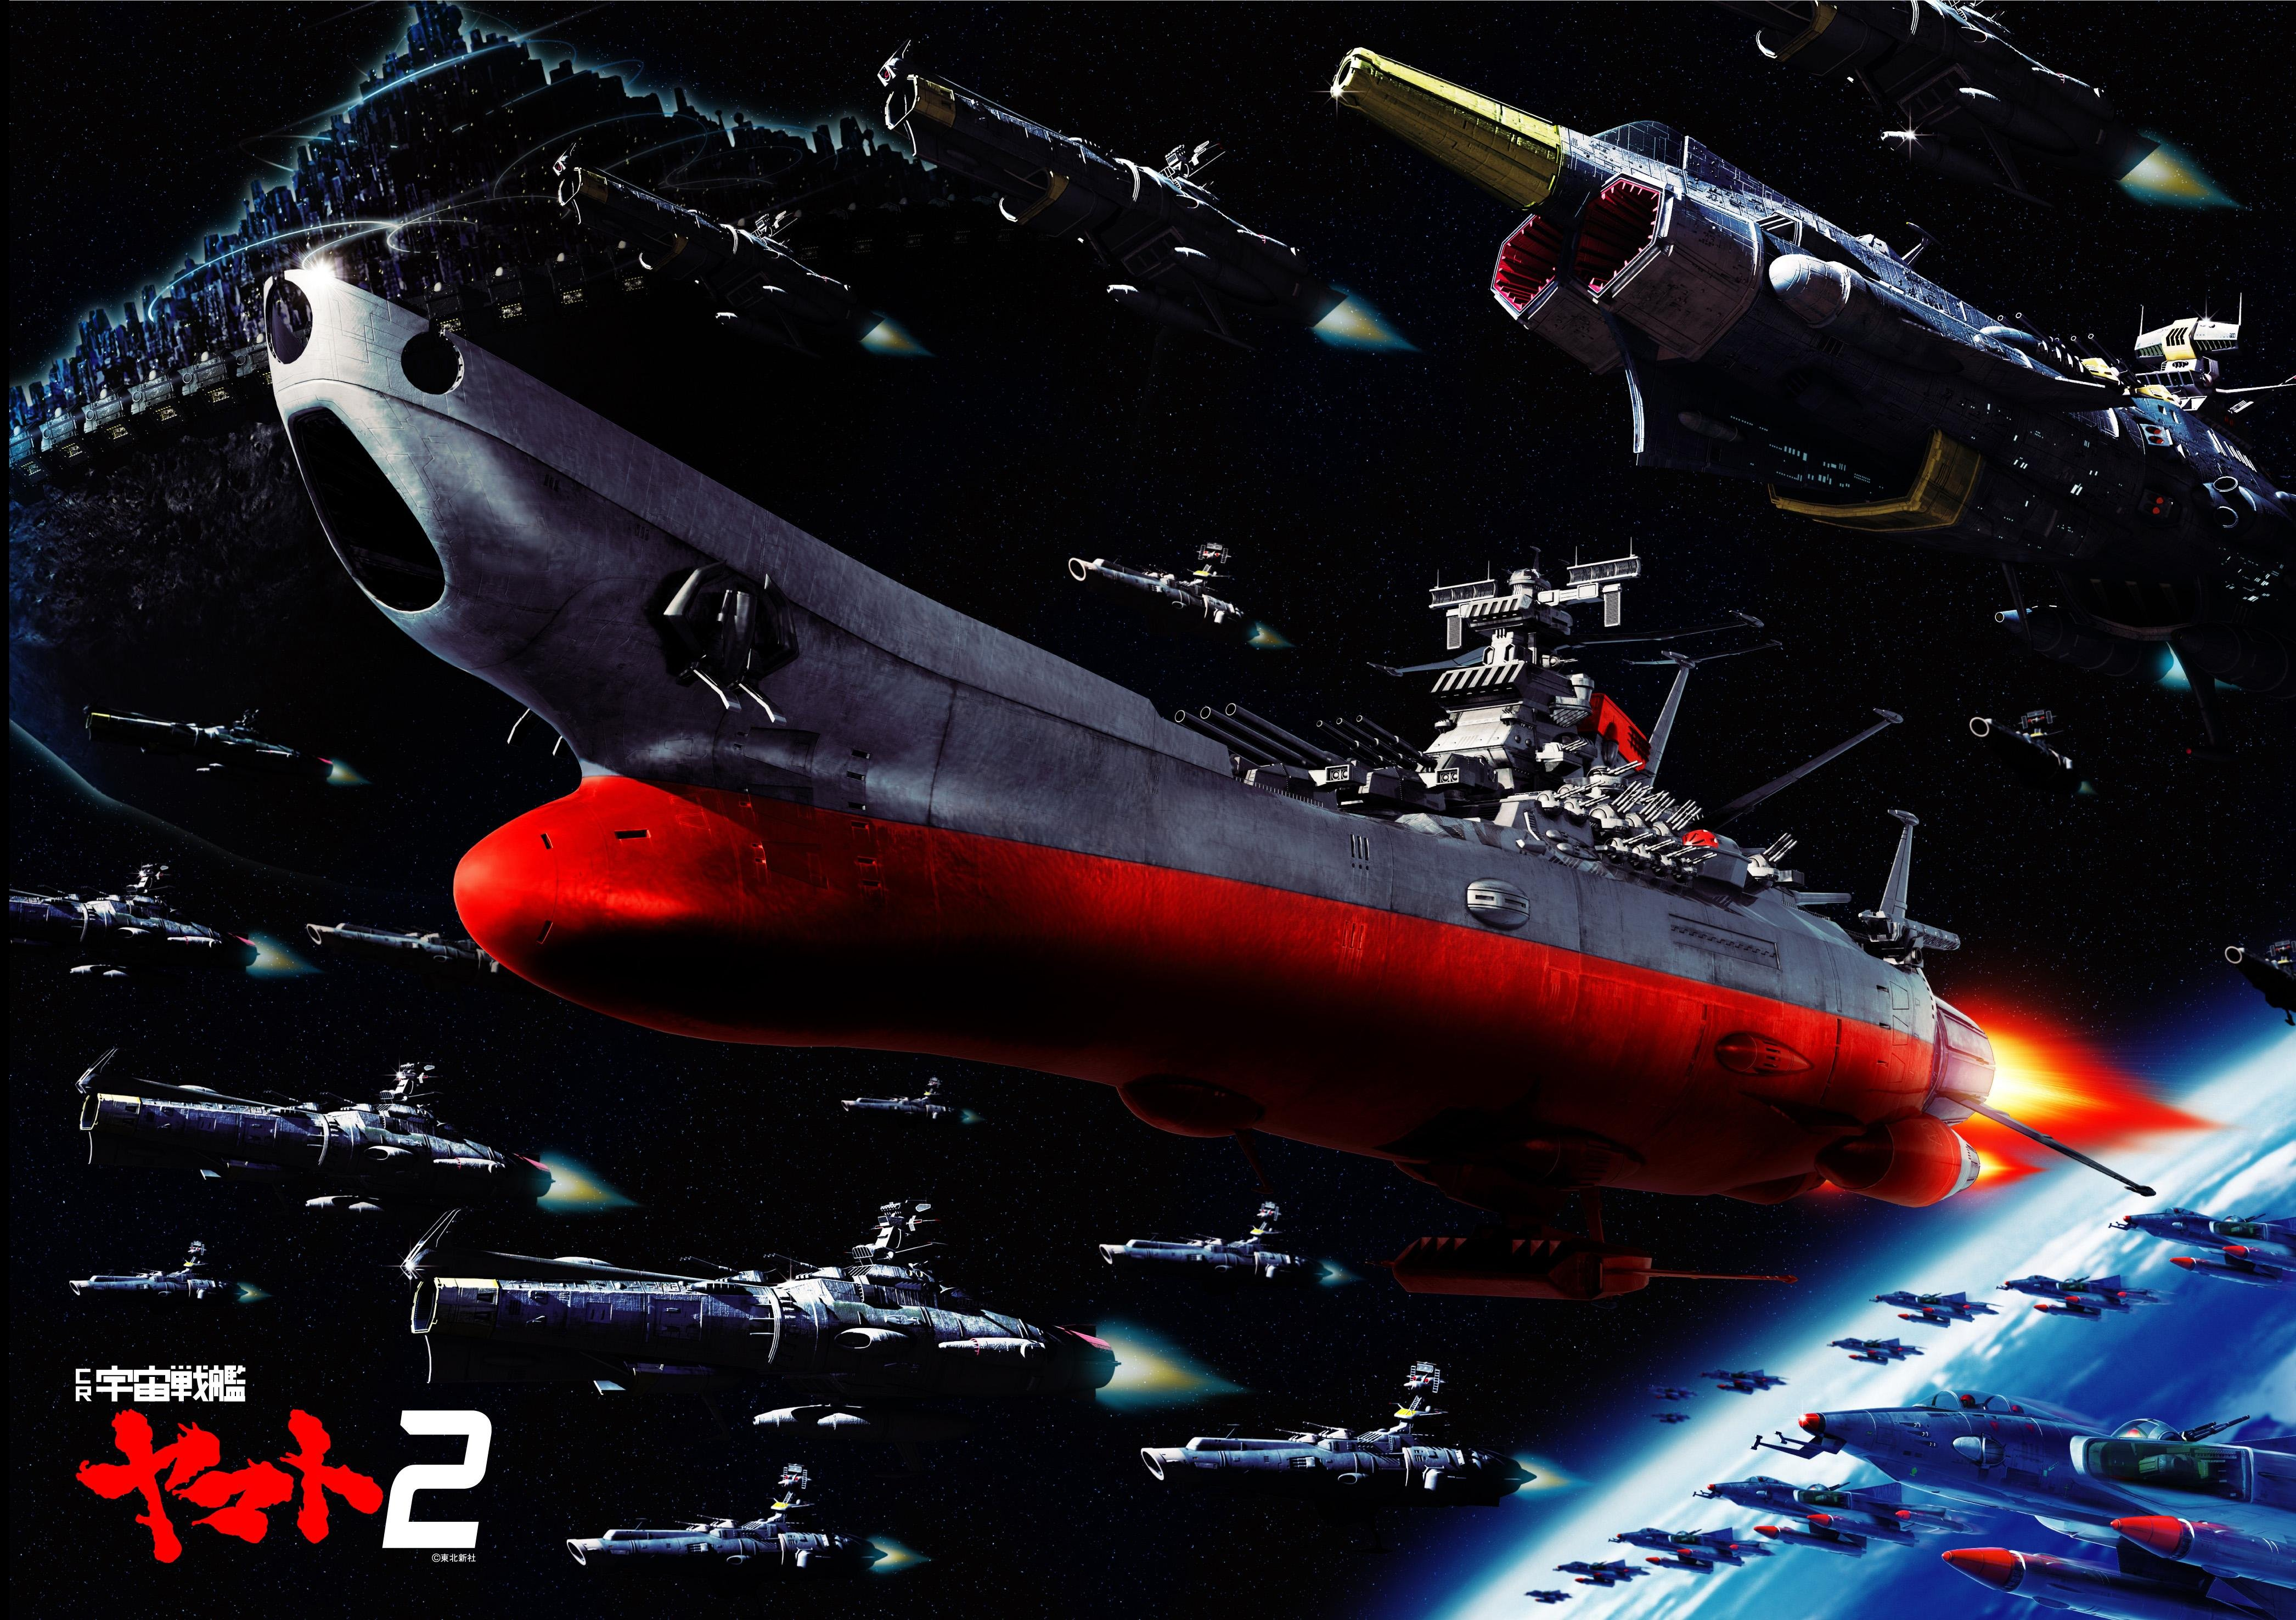 Starblazers Space Battleship Yamato wallpaper | 4184x2952 ...